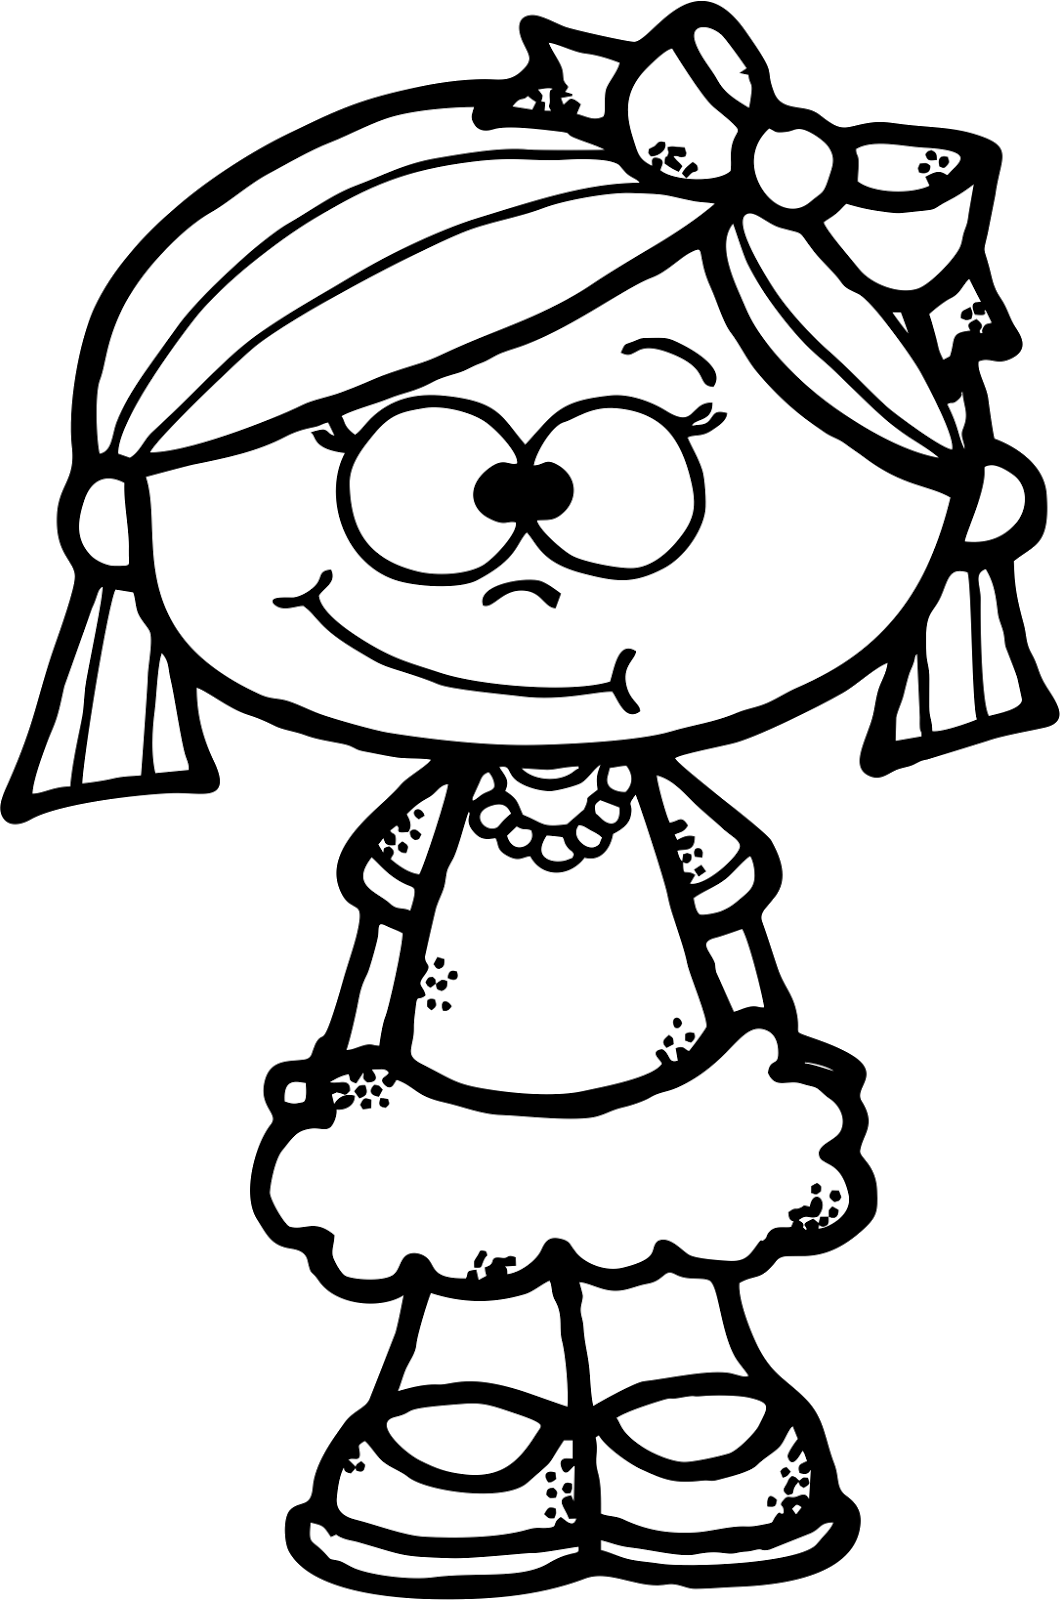 picture black and white Worksheetjunkie cute freebie dibujos. Grades clipart hard working girl student